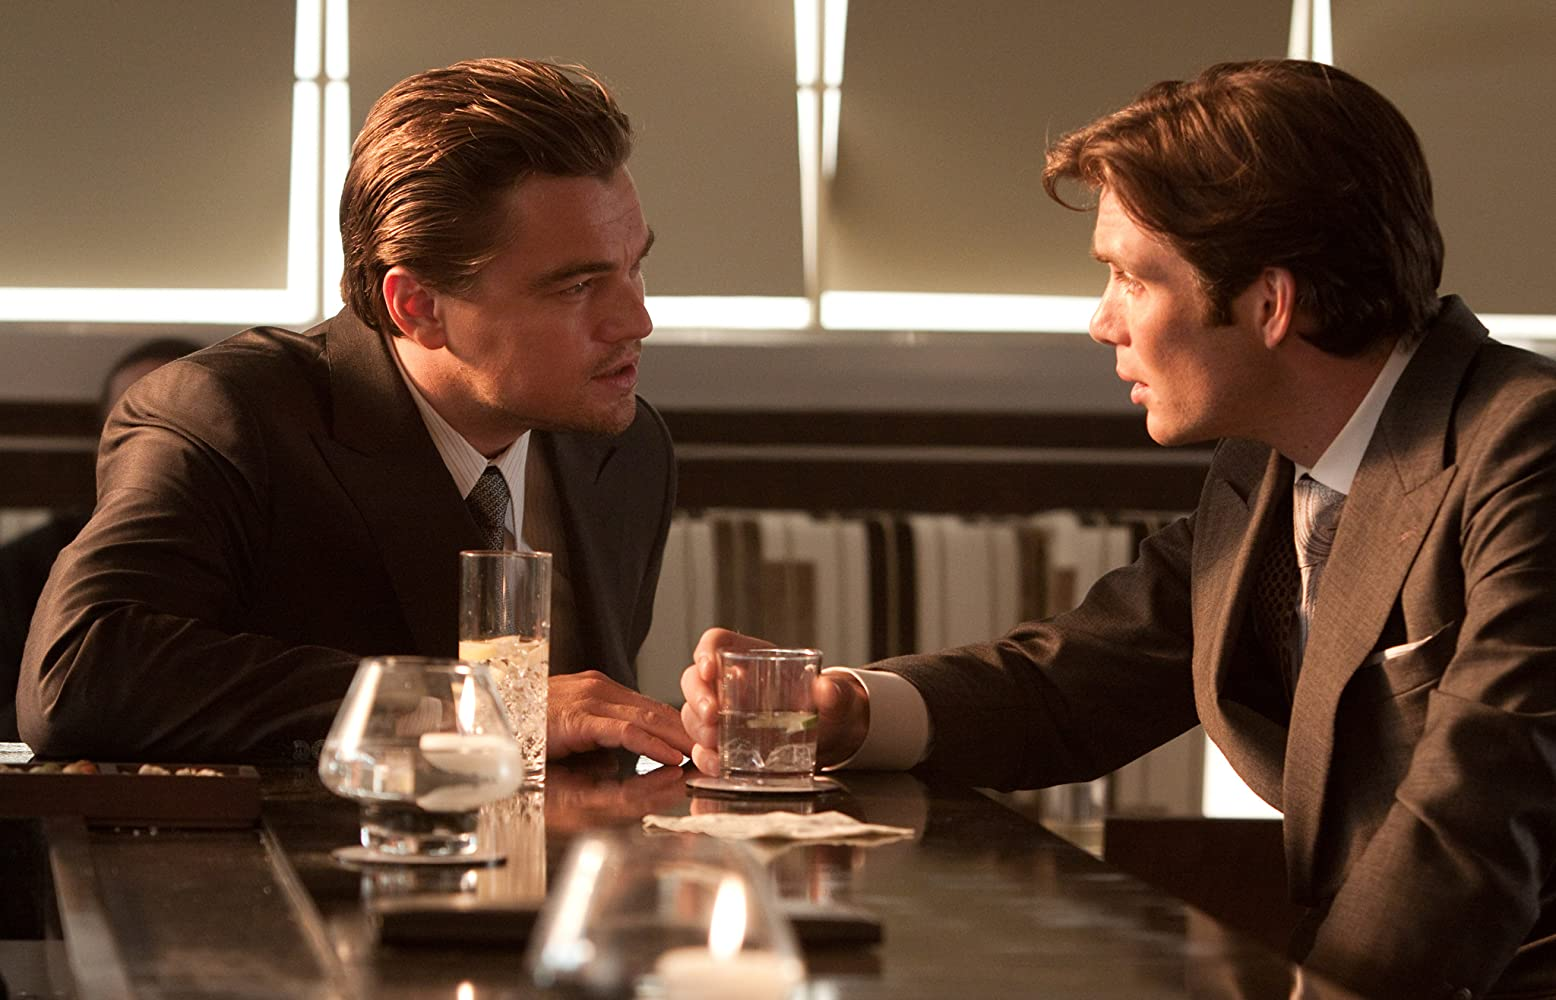 Leonardo DiCaprio and Cillian Murphy in Inception (2010)